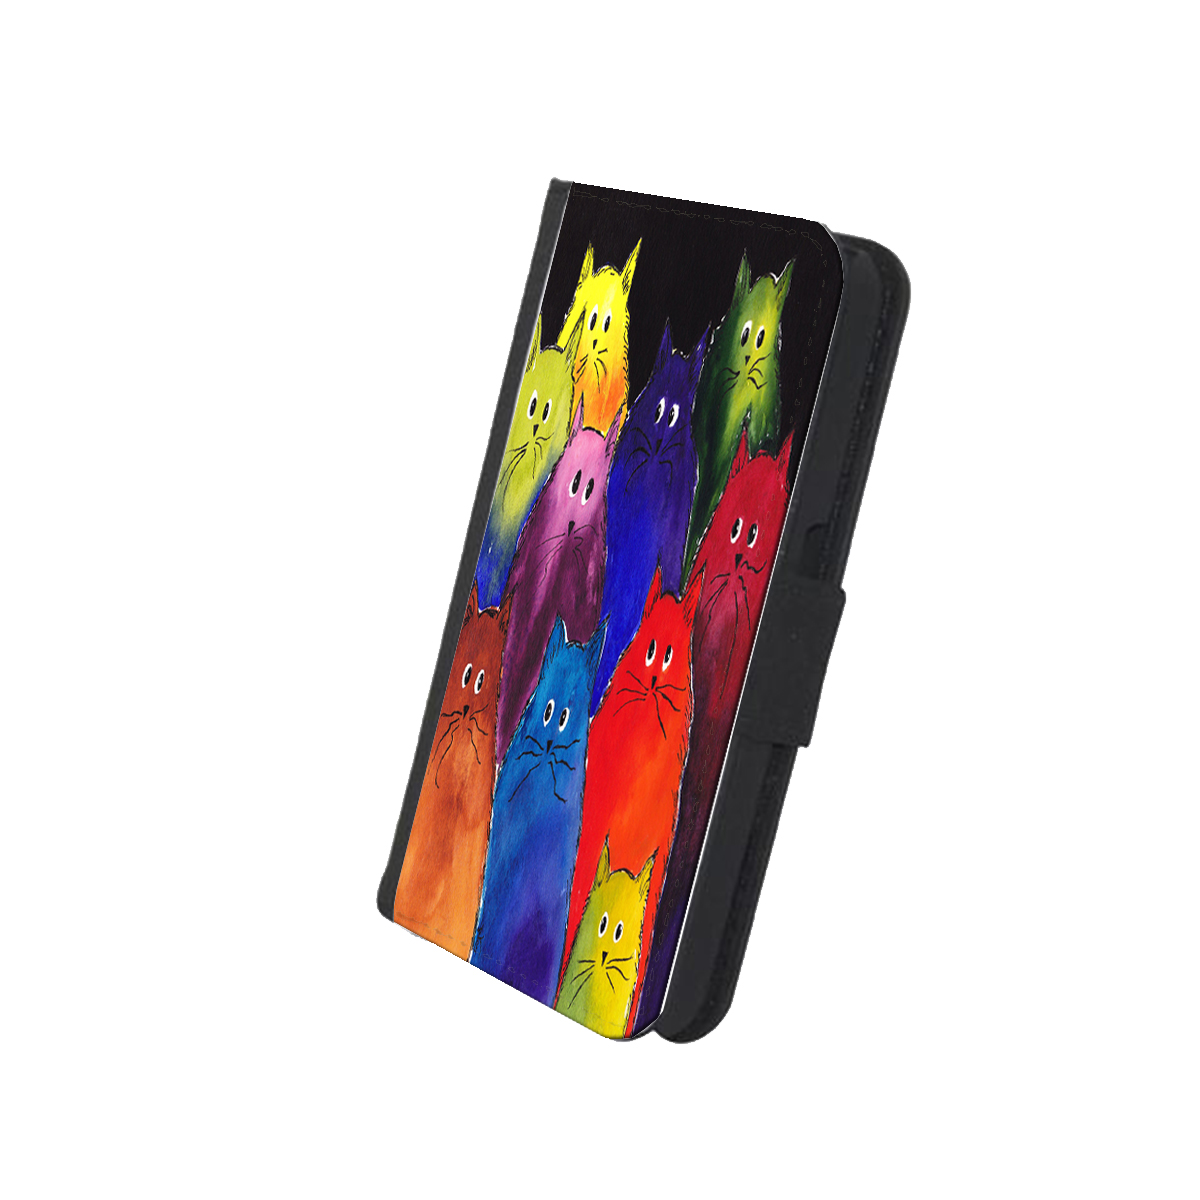 KuzmarK Samsung Galaxy S5 Wallet Case - Very Colorful Two-Toned Silly Maine Coon Kitties Black Background  Art by Denise Every